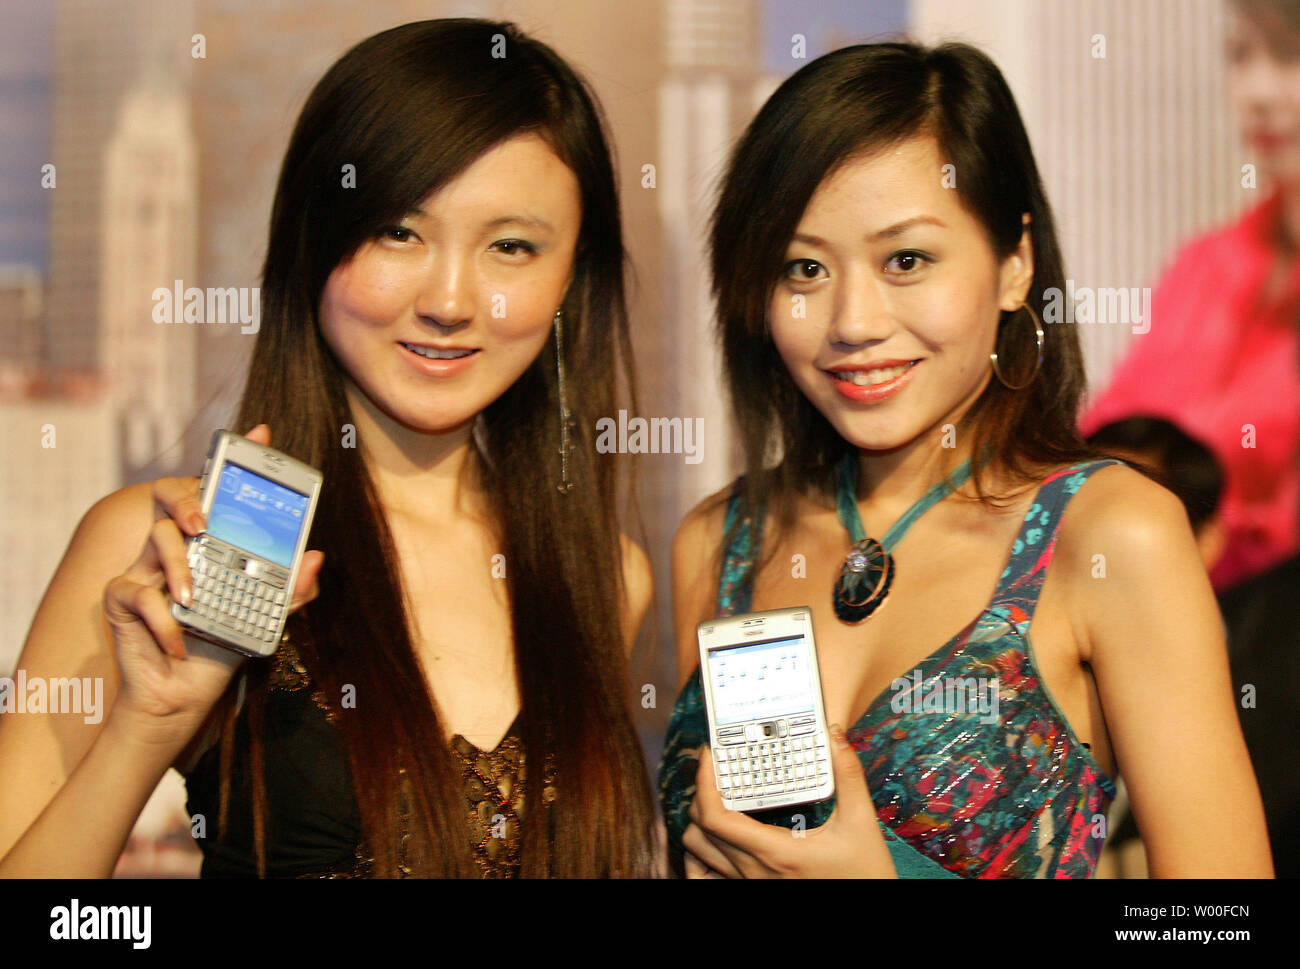 Chinese models display Nokia's latest mobile phone, the E62,  at Nokia's 'Our Mobile Life 2007' conference in Beijing, China. on December 03, 2006.  Nokia, the world's biggest cell- phone maker, expects the number of handset users in China to rise 11 percent to more than 500 million in 2007, boosted by growth in rural areas.  The country will add a further 160 million users from next year until 2010, Espoo, Finland-based Nokia said in a statement issued in Beijing today. China had 449 million users as of October, more than the populations of Japan and the U.S. combined.  (UPI Photo/Stephen Sha - Stock Image